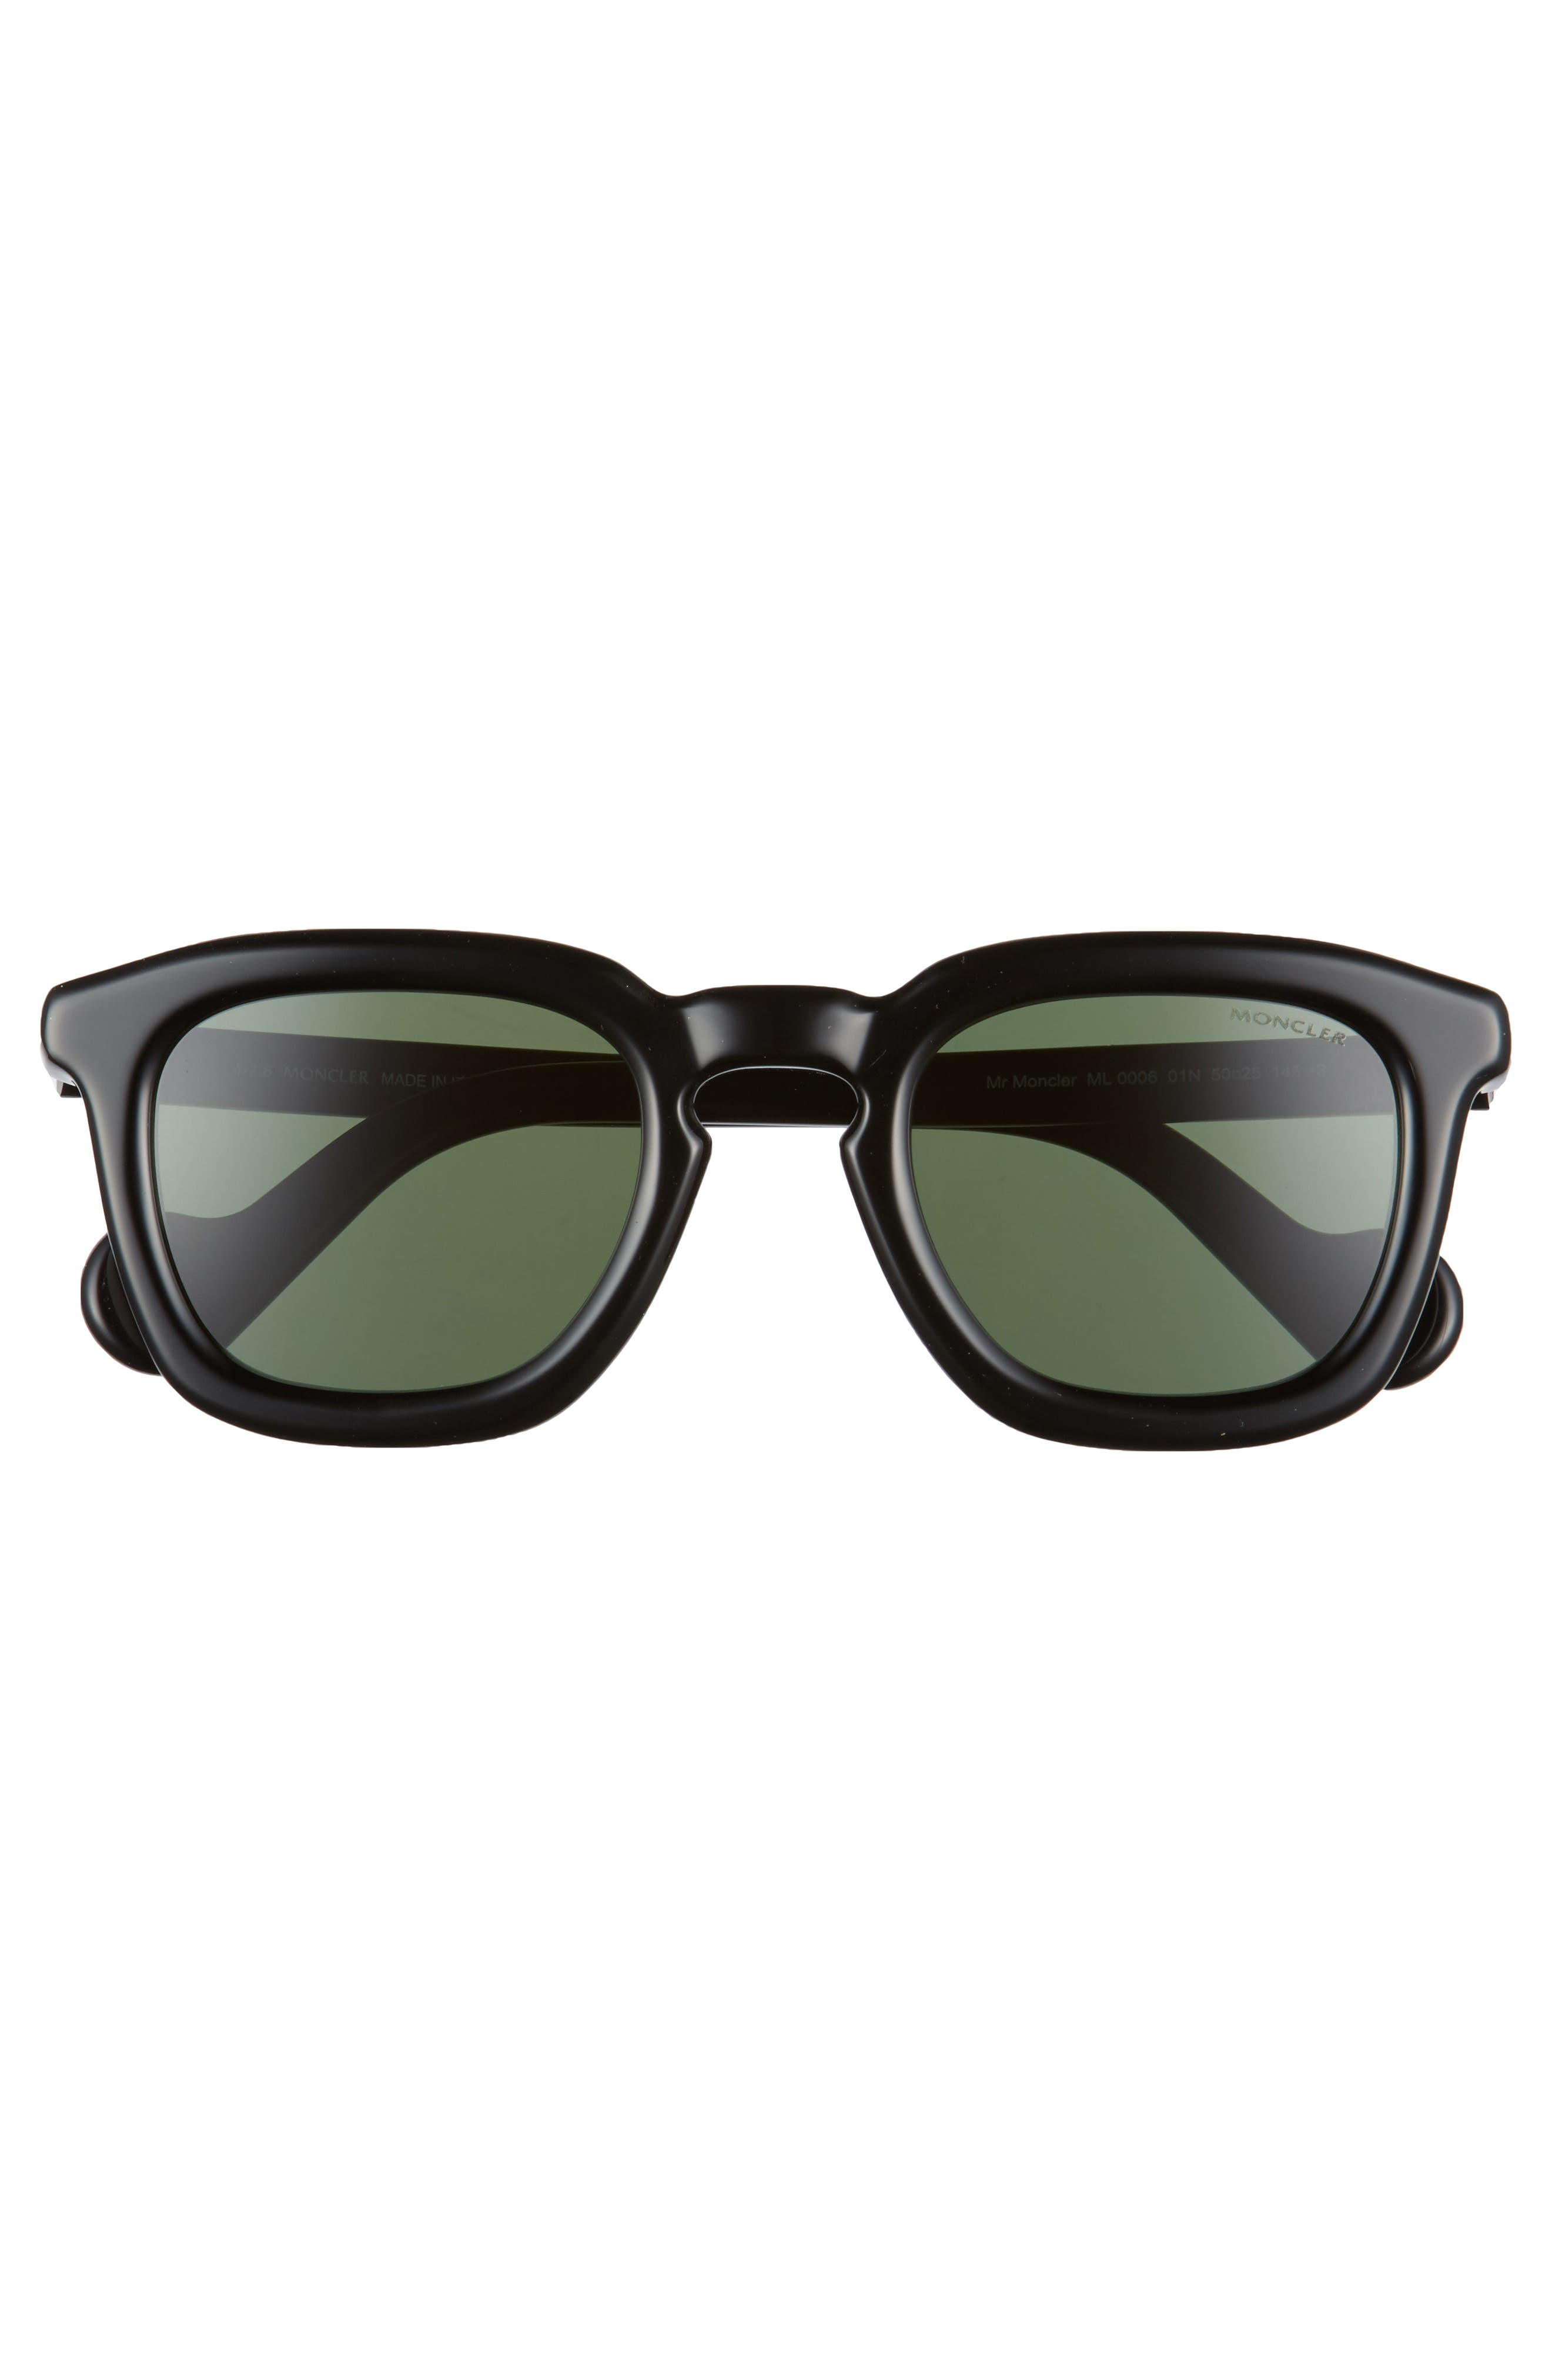 50mm Square Sunglasses,                             Alternate thumbnail 2, color,                             Black/ Green